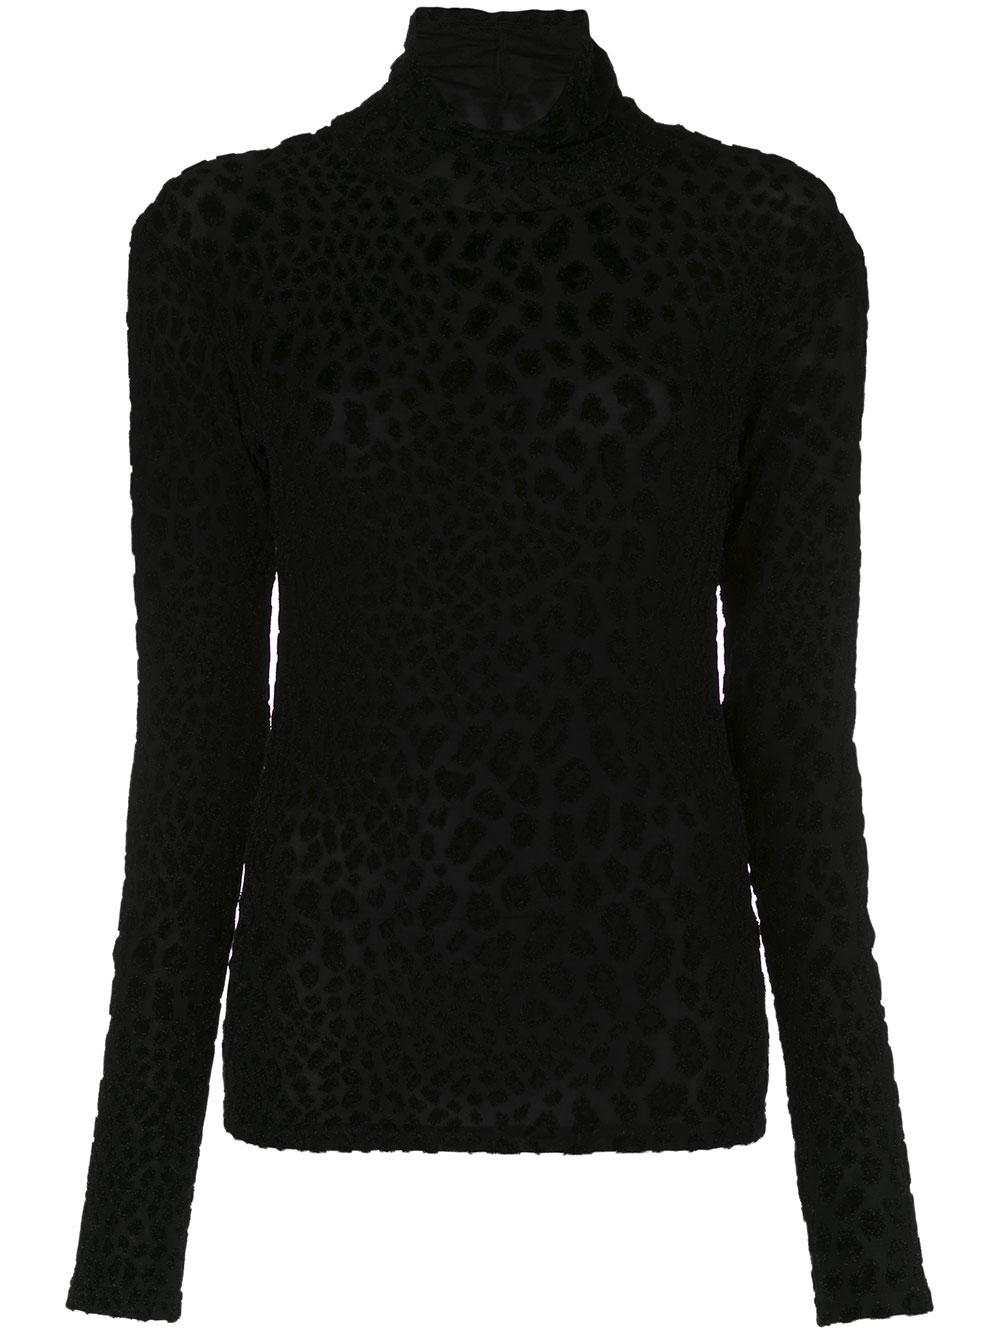 Delphine Cut Velvet Turtleneck Animal Print